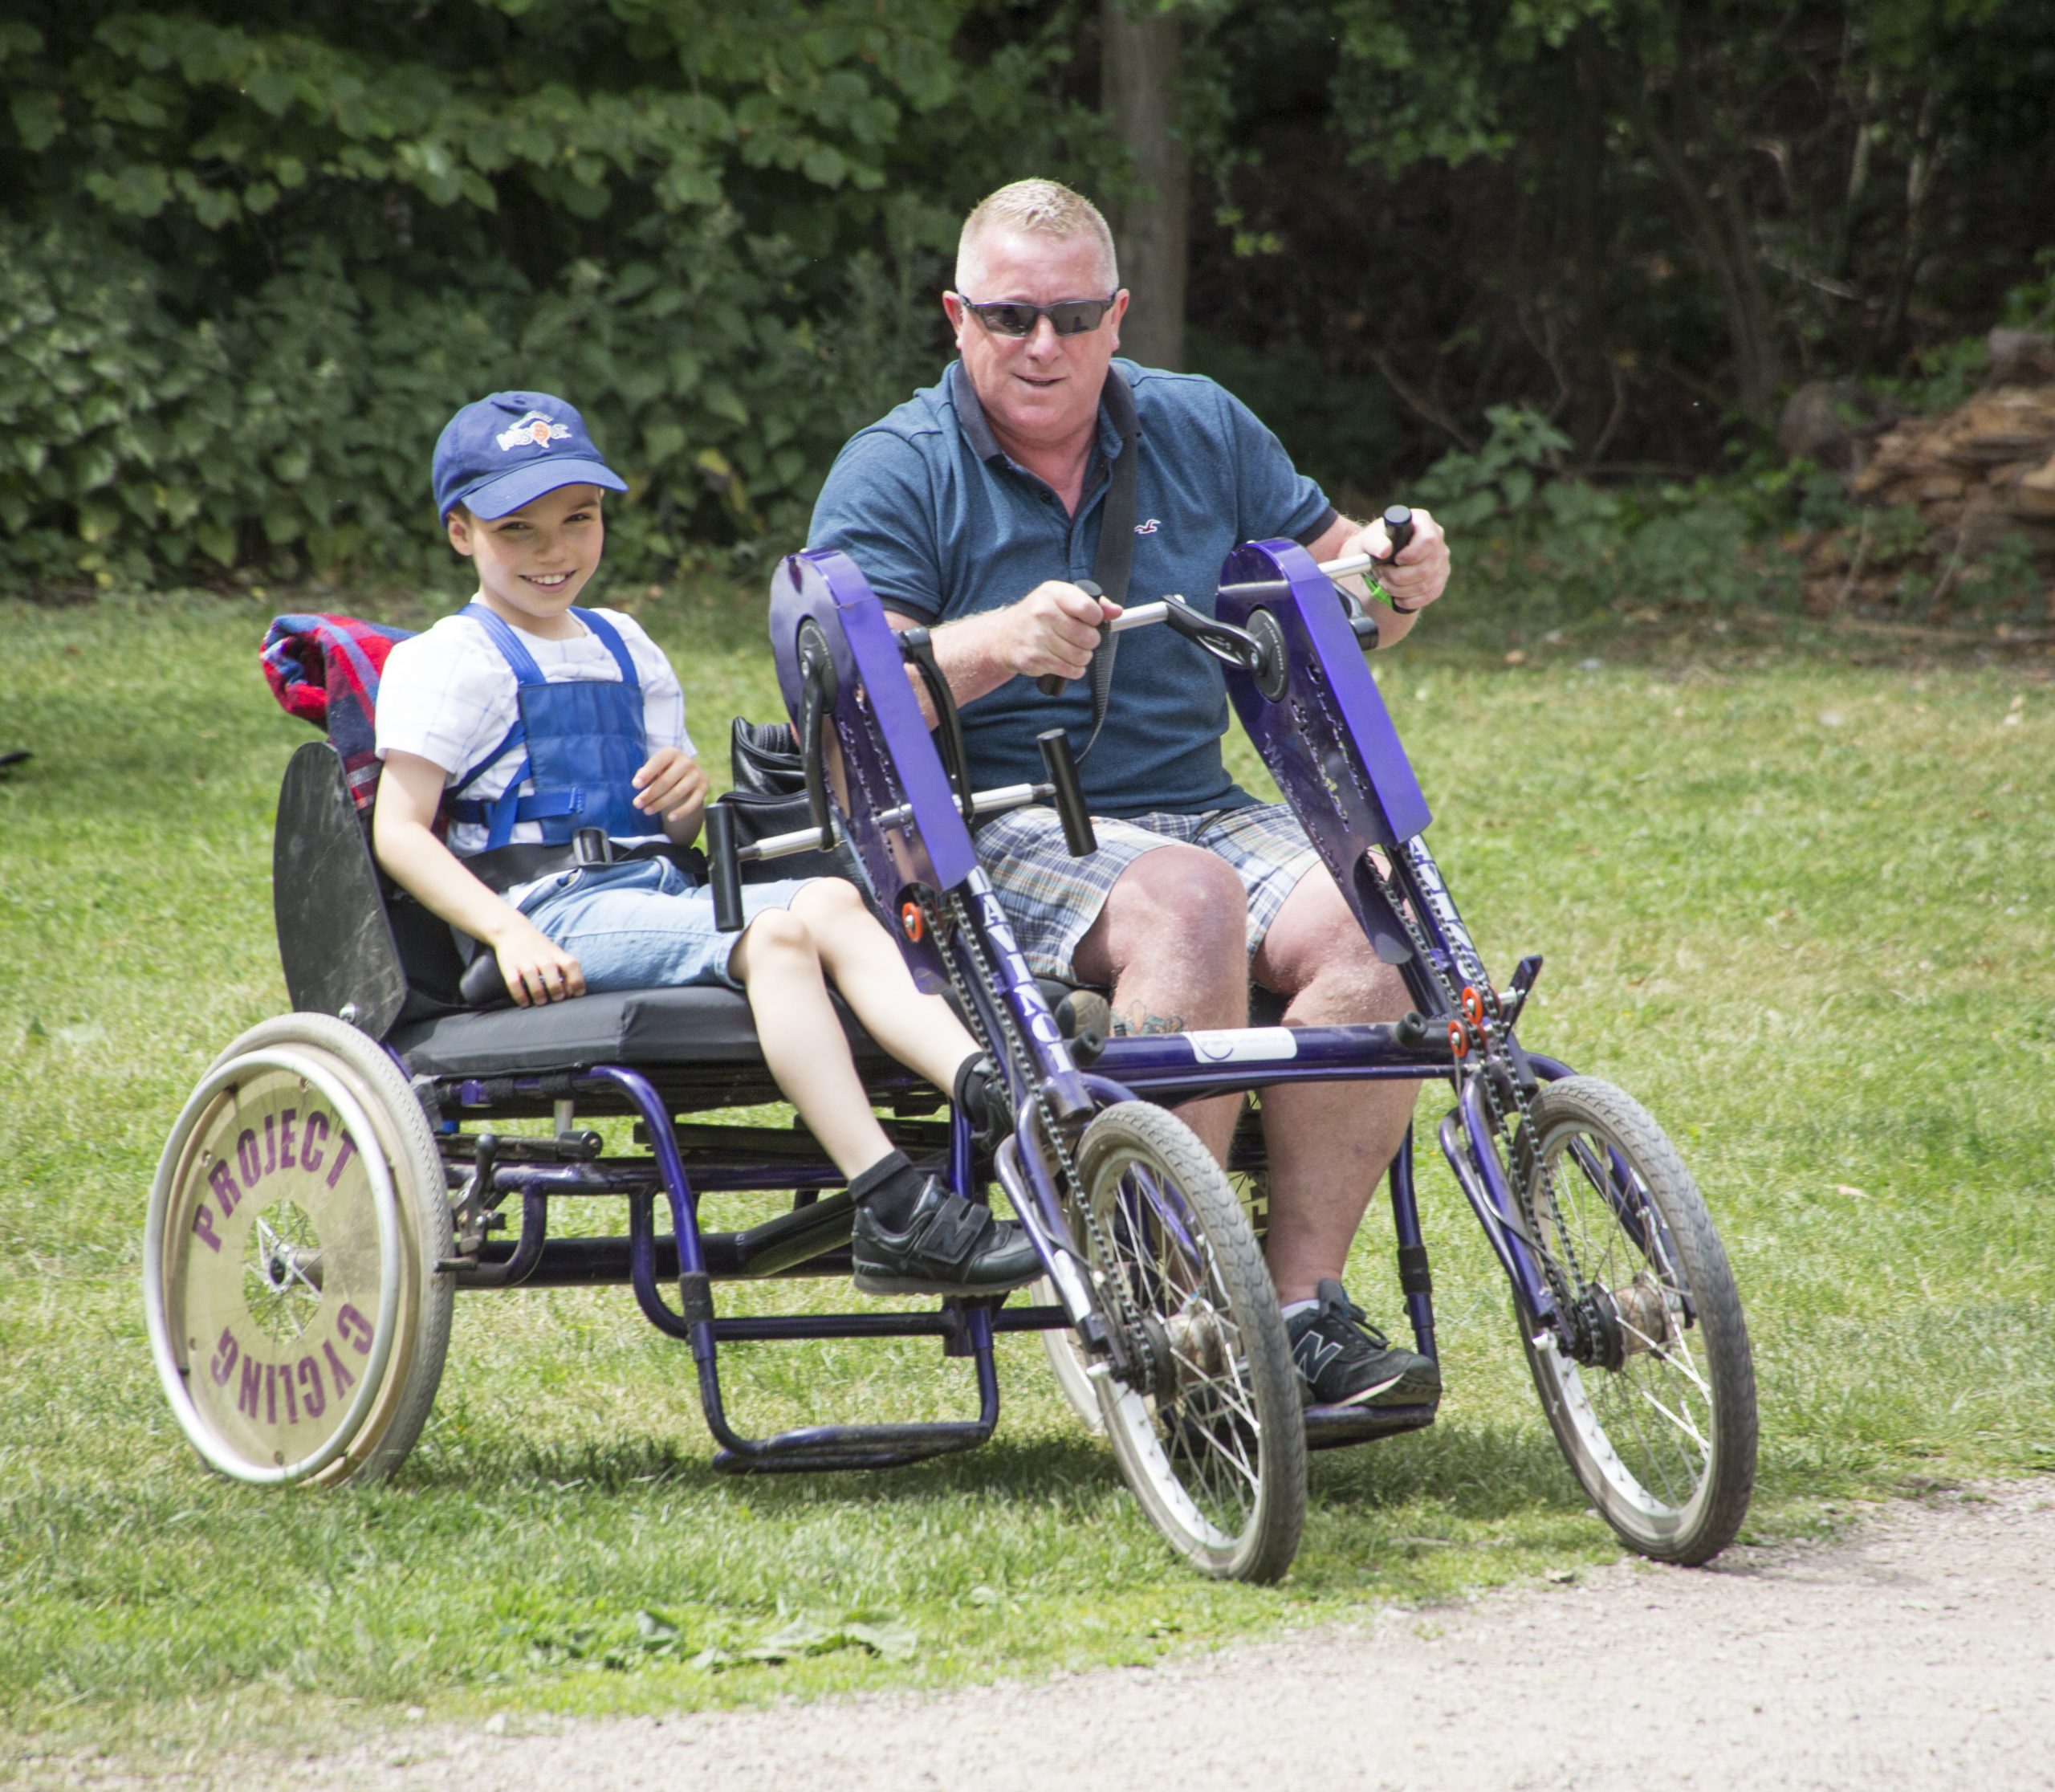 A child and man on a side by side bike